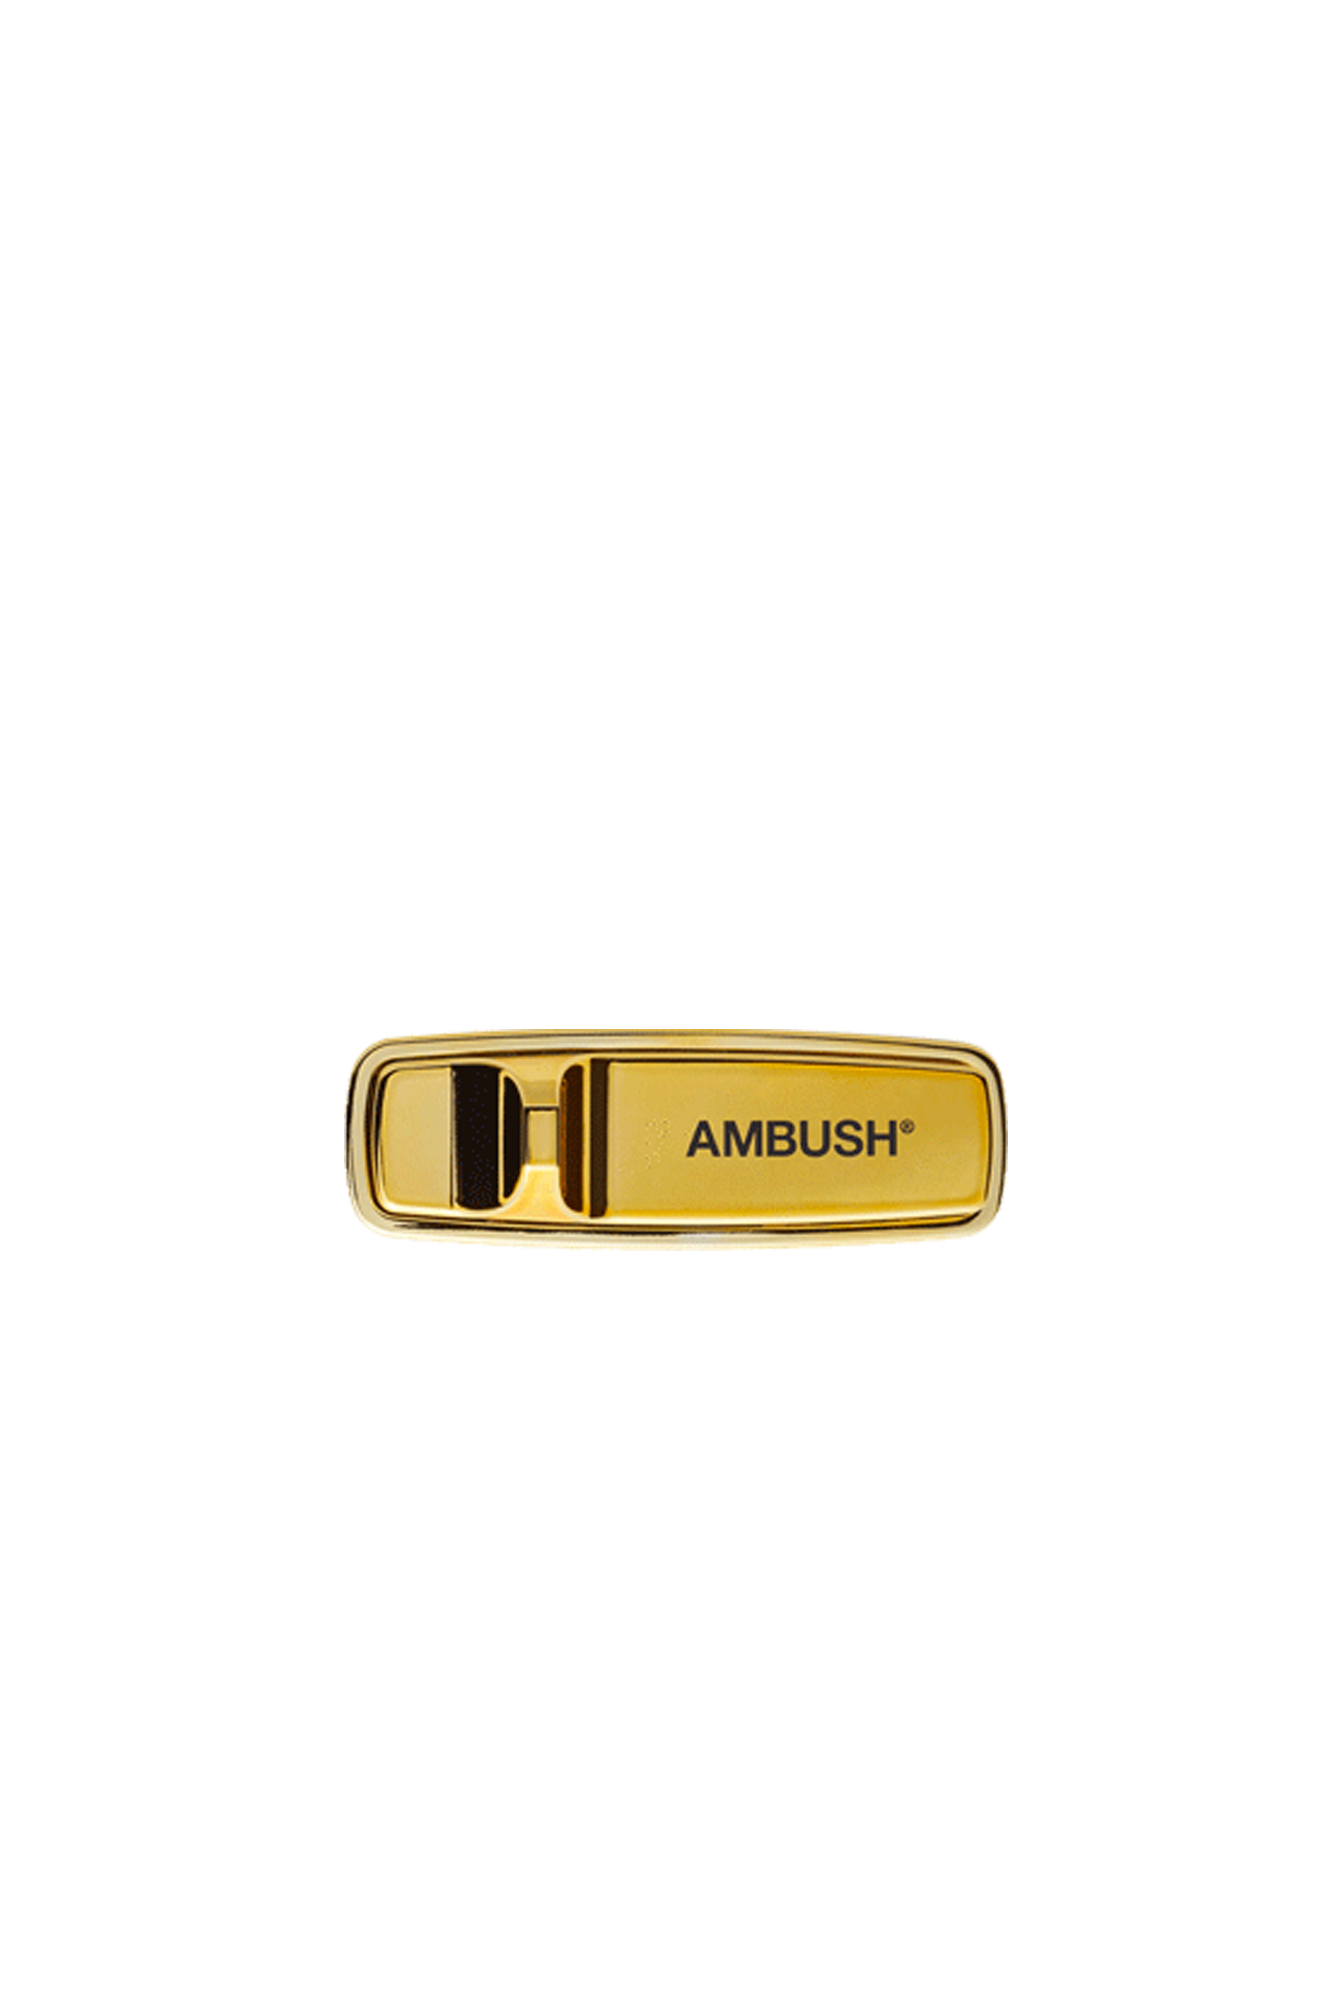 Ambush Goods SECURITY TAG PIN Gold 12111913#000#C0004#OS - One Block Down